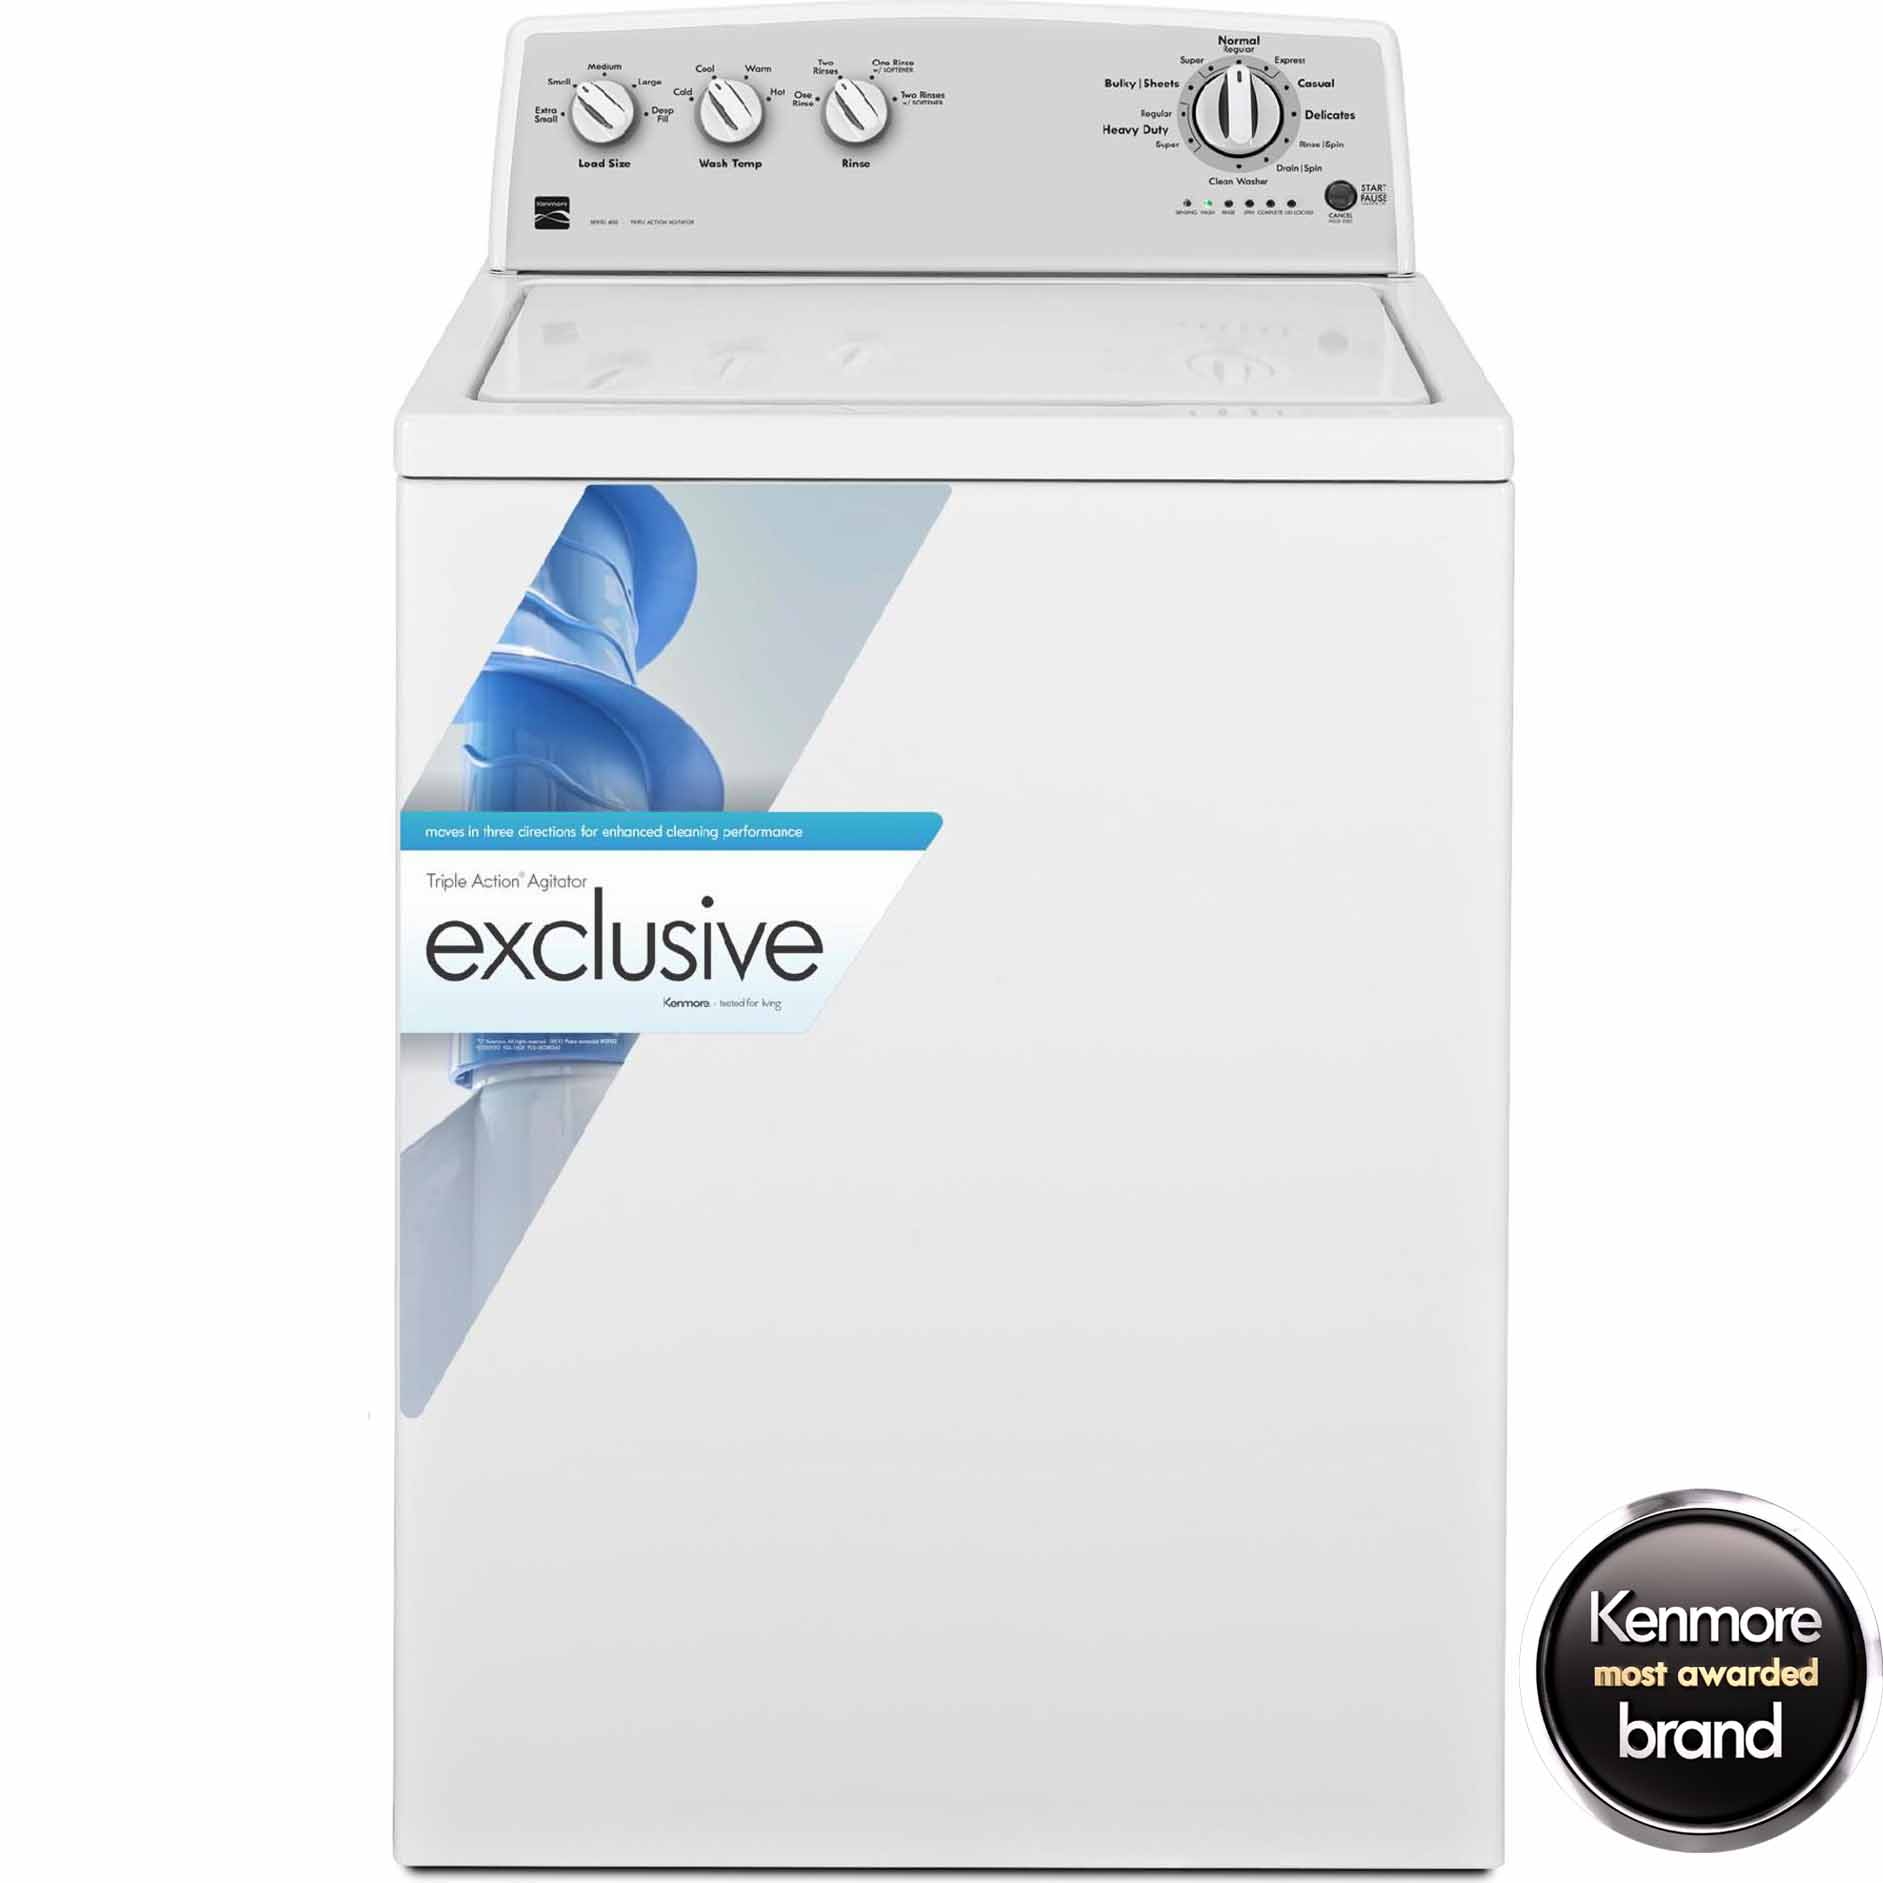 Kenmore 23102 3.6 cu. ft. Top-Load Washer w/ Clean Washer Cycle - White